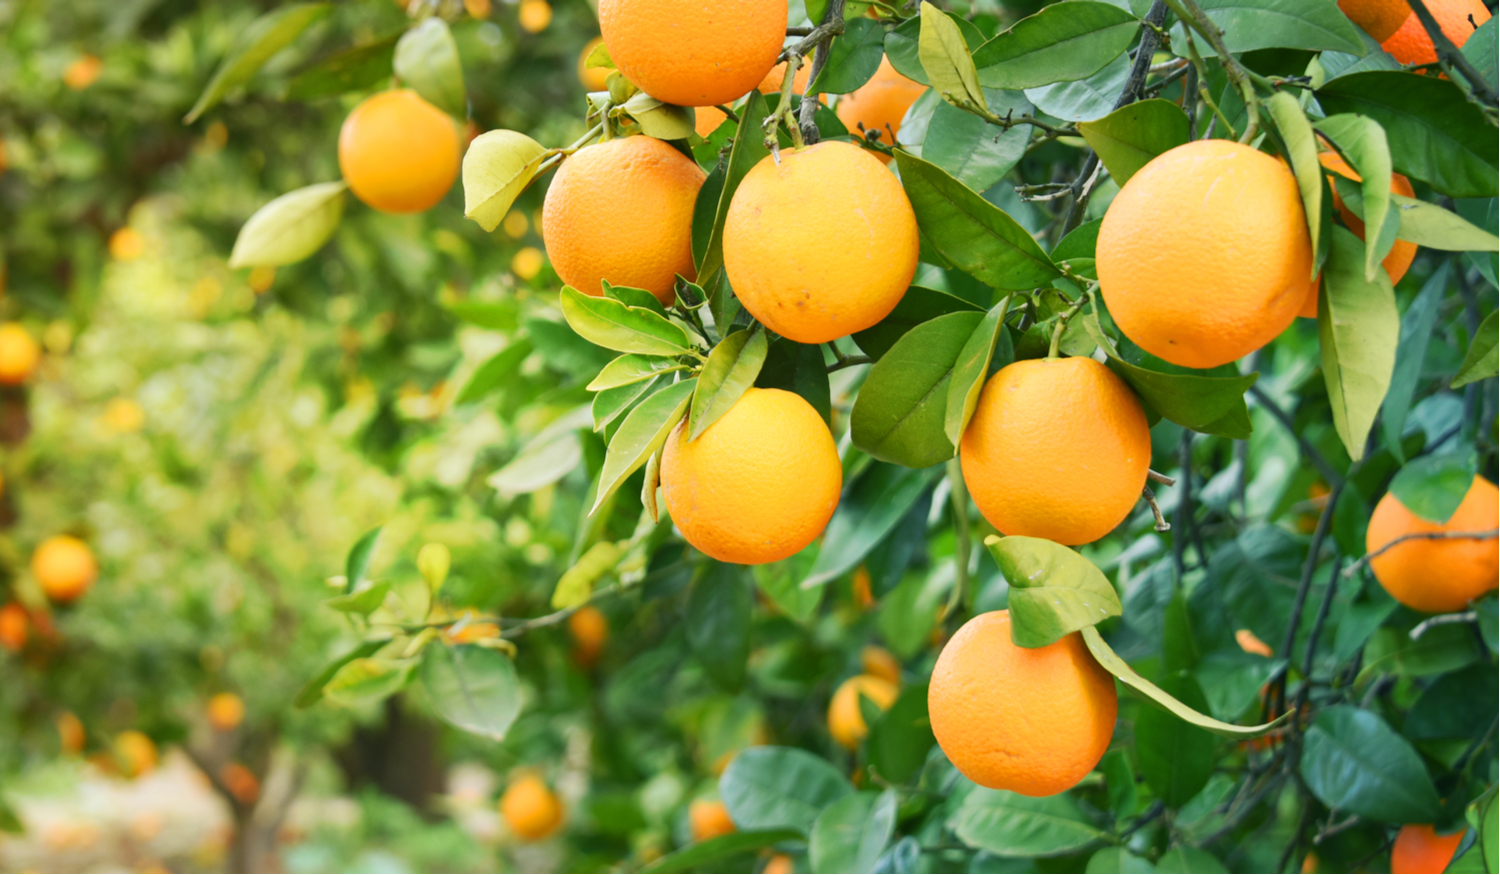 Photo of oranges growing in a Florida citrus grove